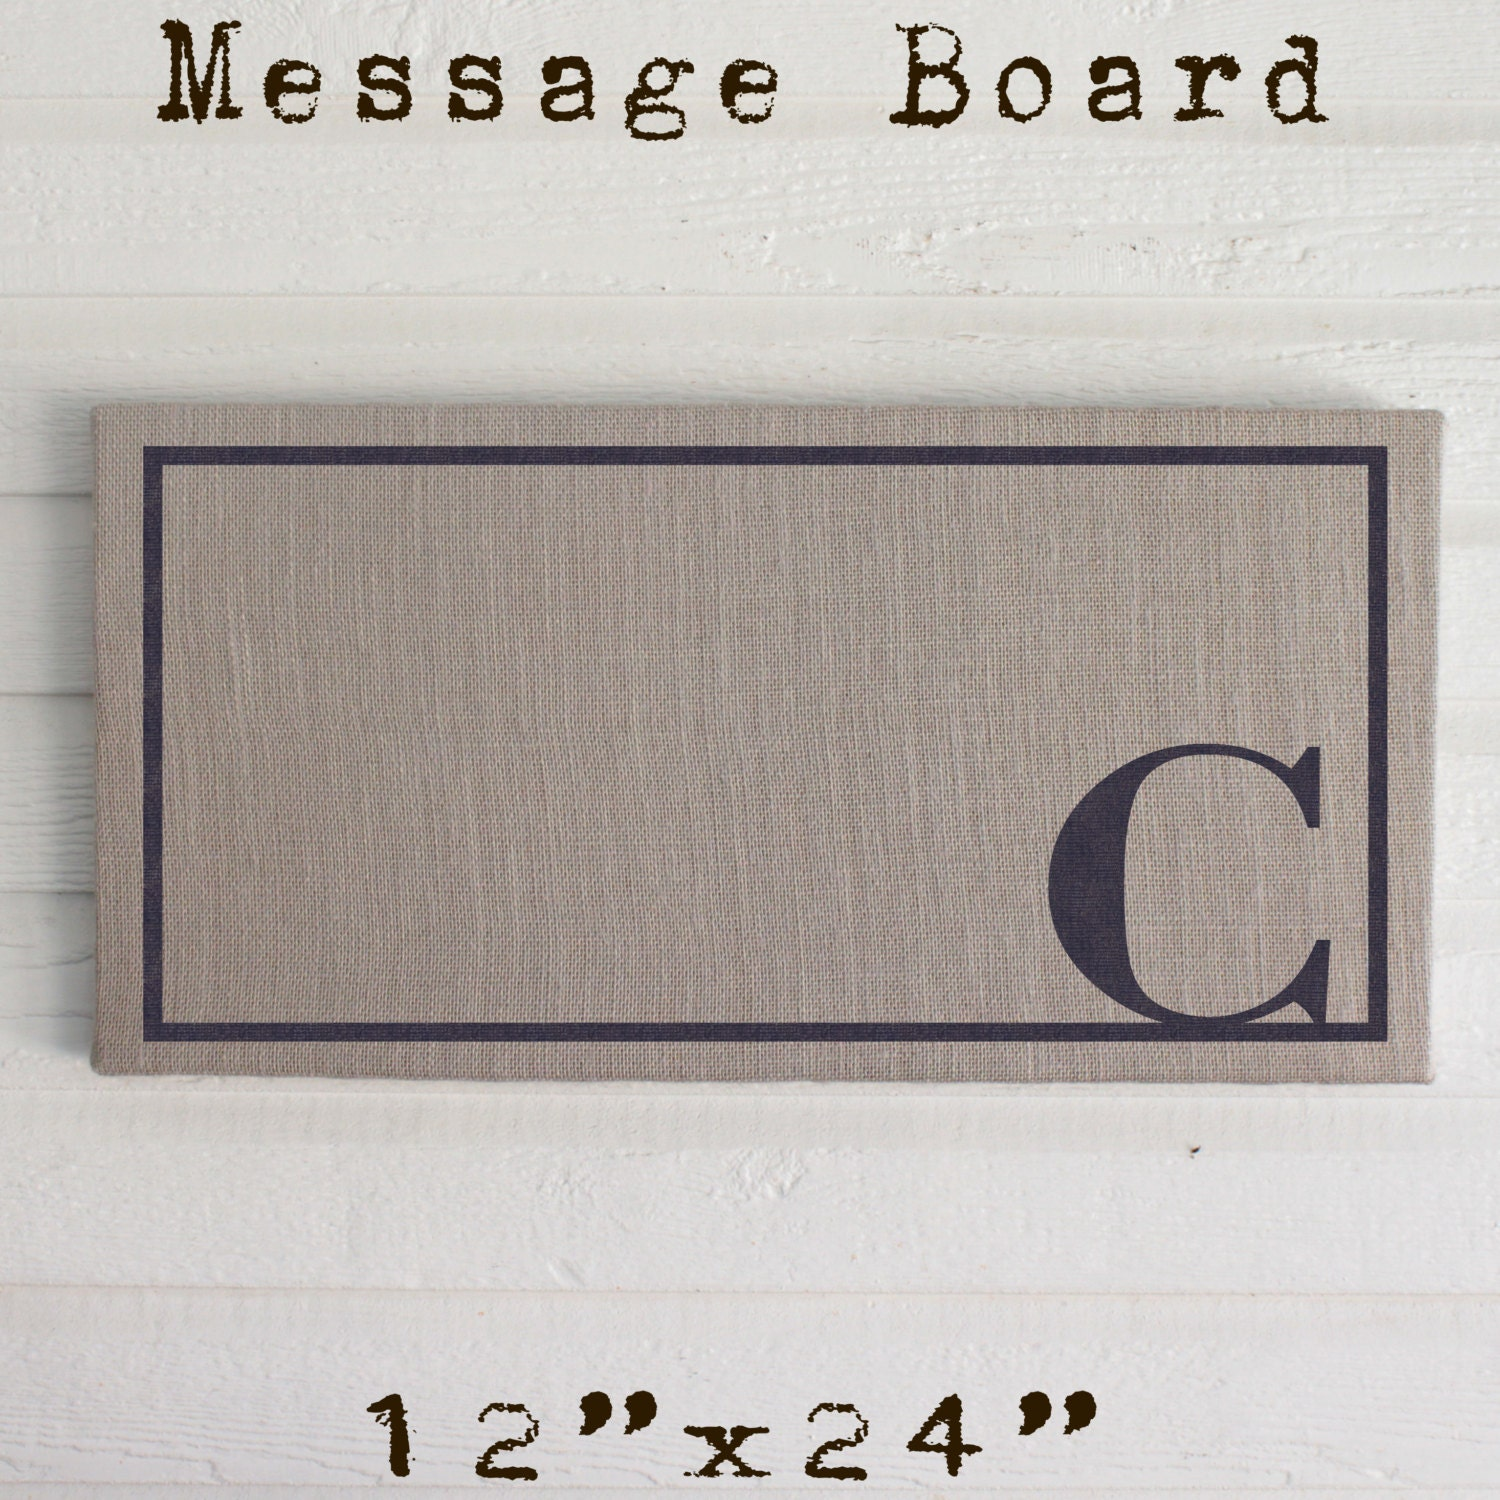 classic monogram 12x24 burlap covered cork message board letter pin board cork board bulletin board memo board custom